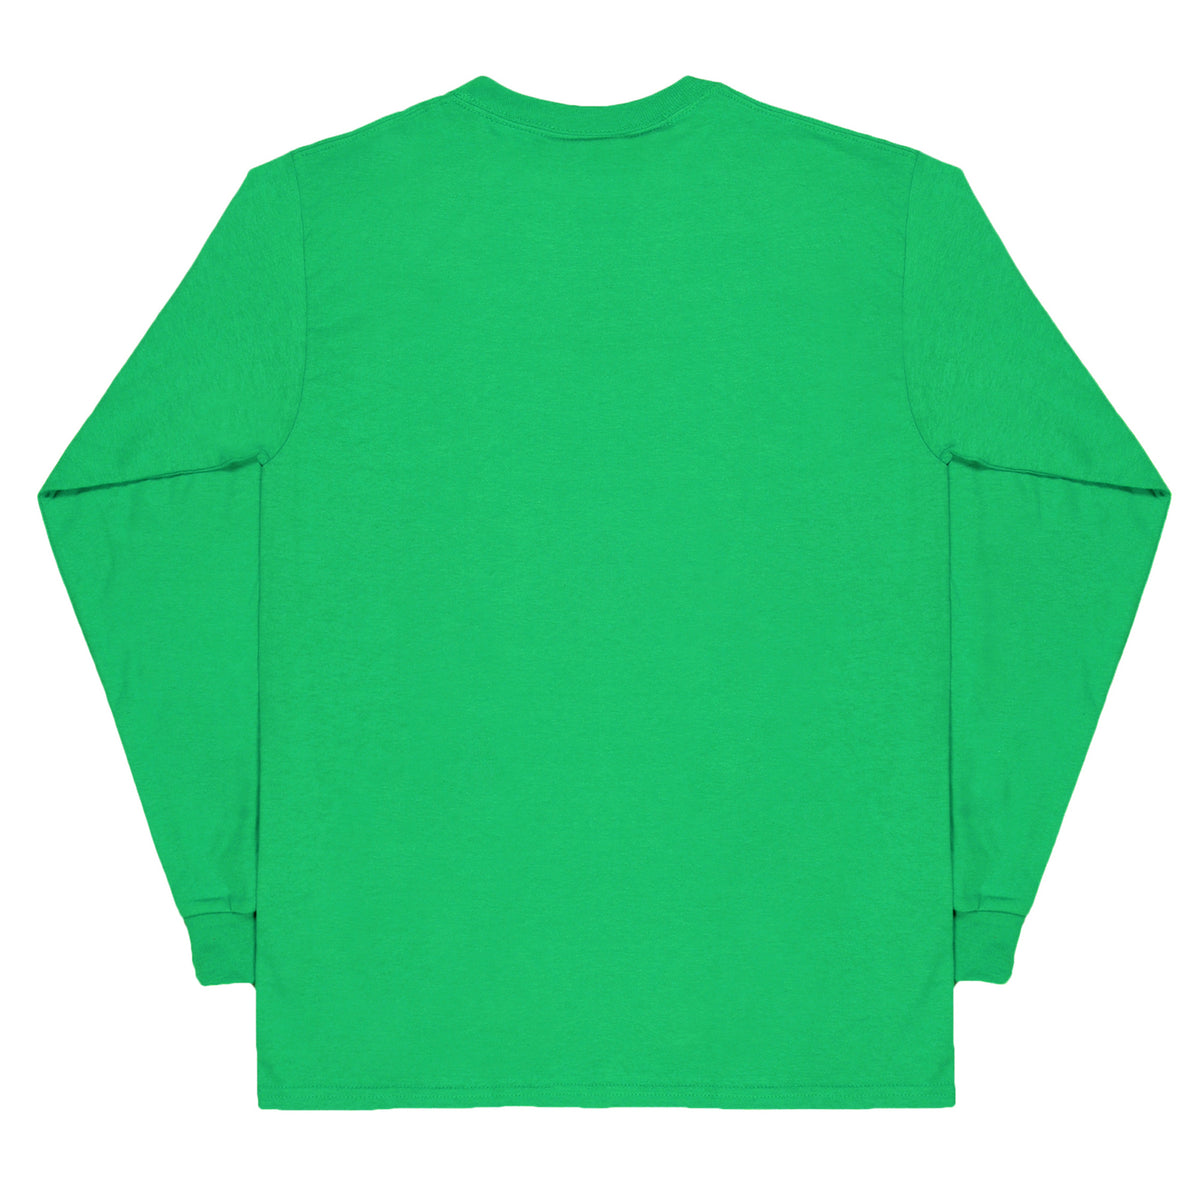 CAVENDOLI irish green LS tee - RAVE skateboards